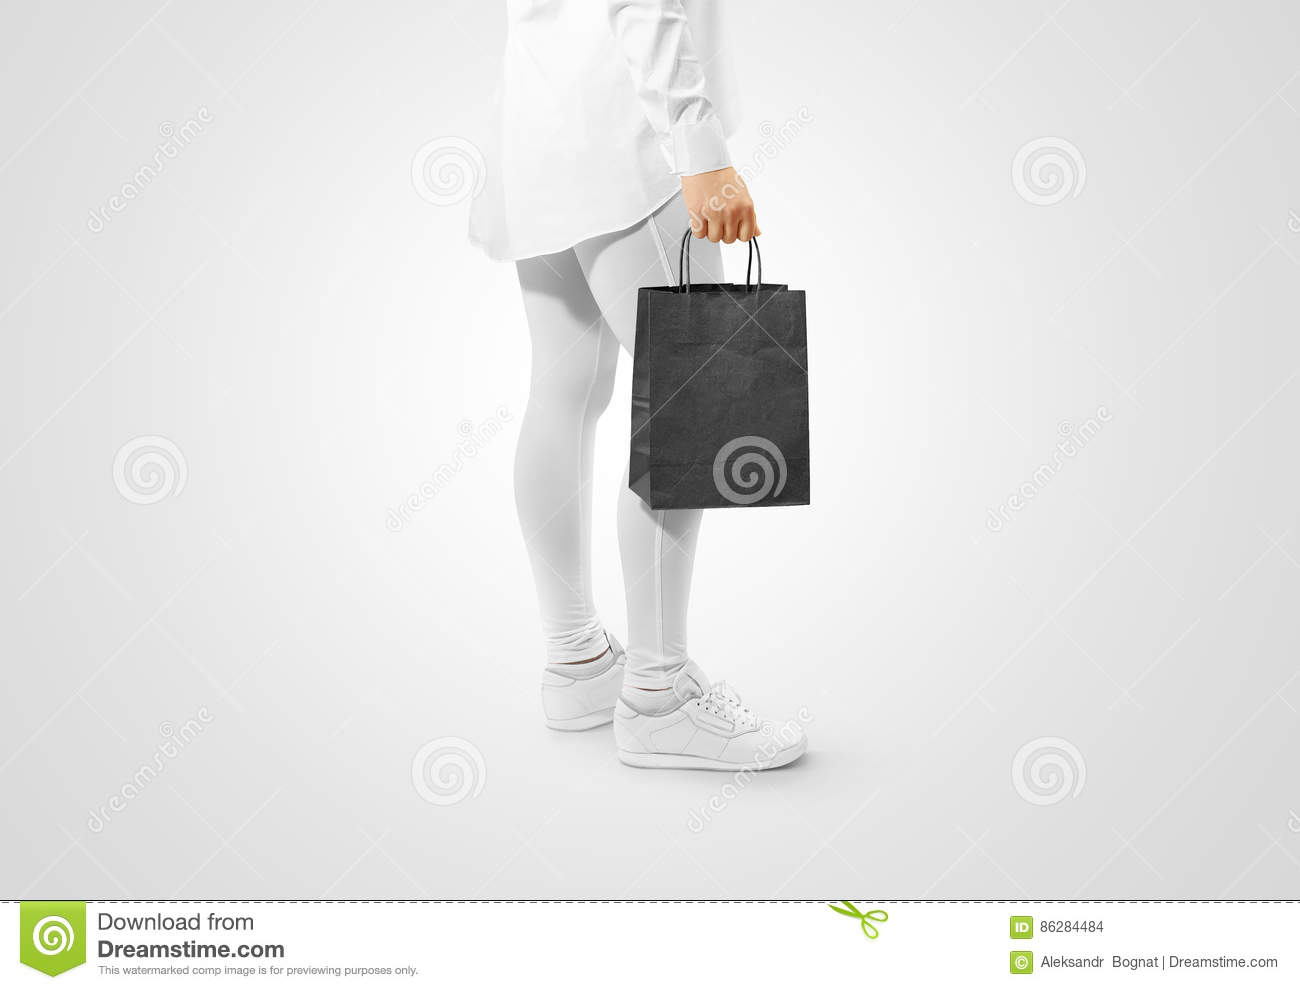 Blank Black Craft Paper Bag Design Mockup Holding Hand Stock Photo Image Of Pack Bagful 86284484